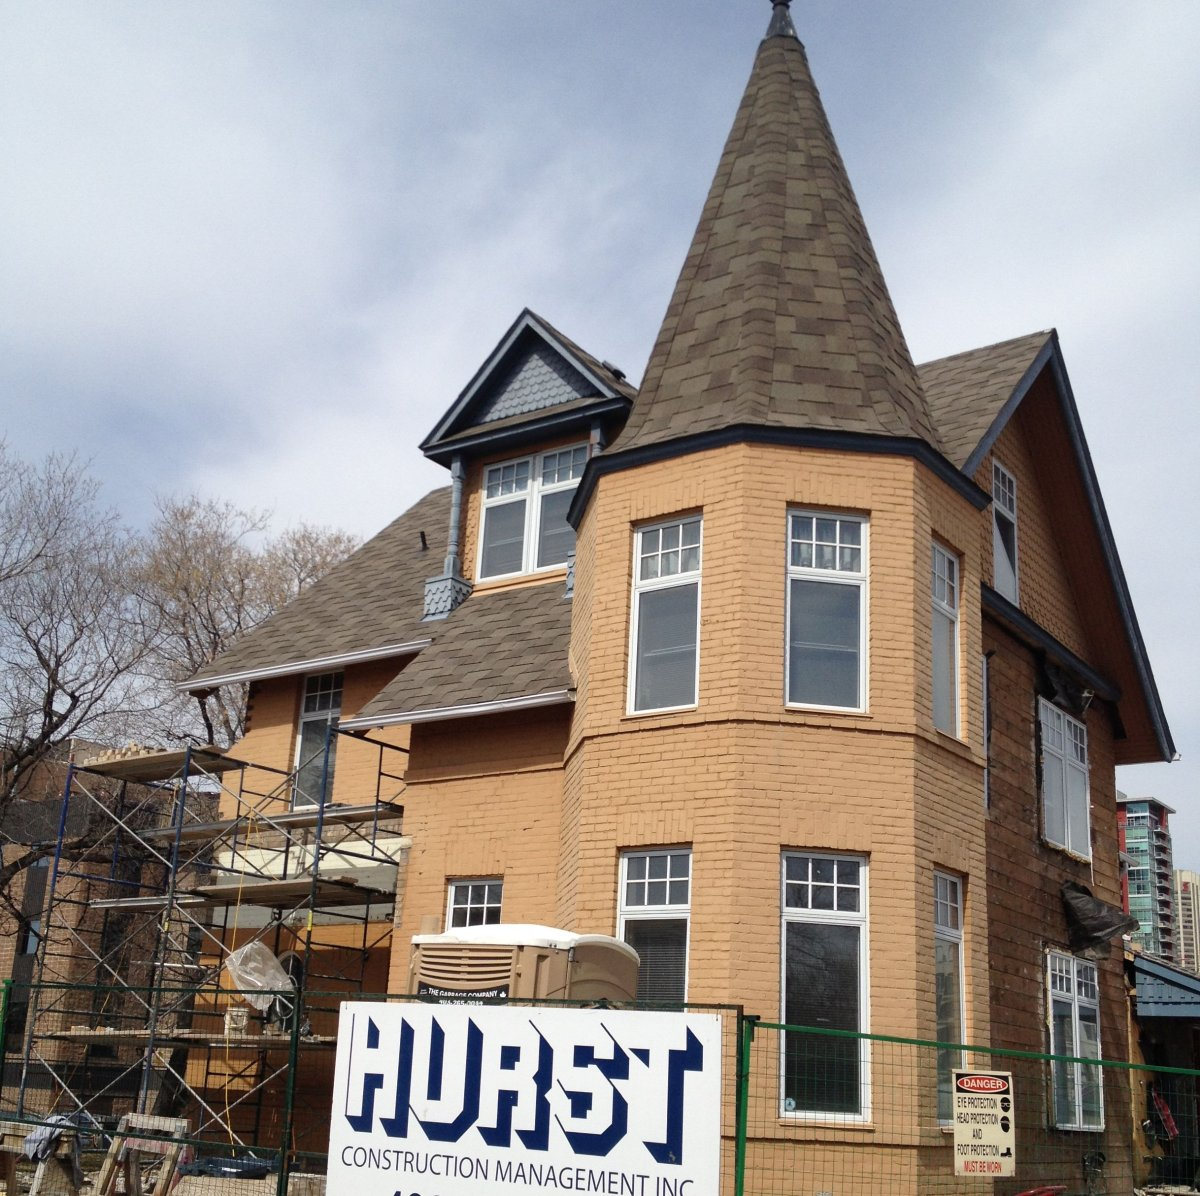 The McHugh House was built back in 1896, and has sat across from St. Mary's High School on 18 Ave. and Centre Street South.